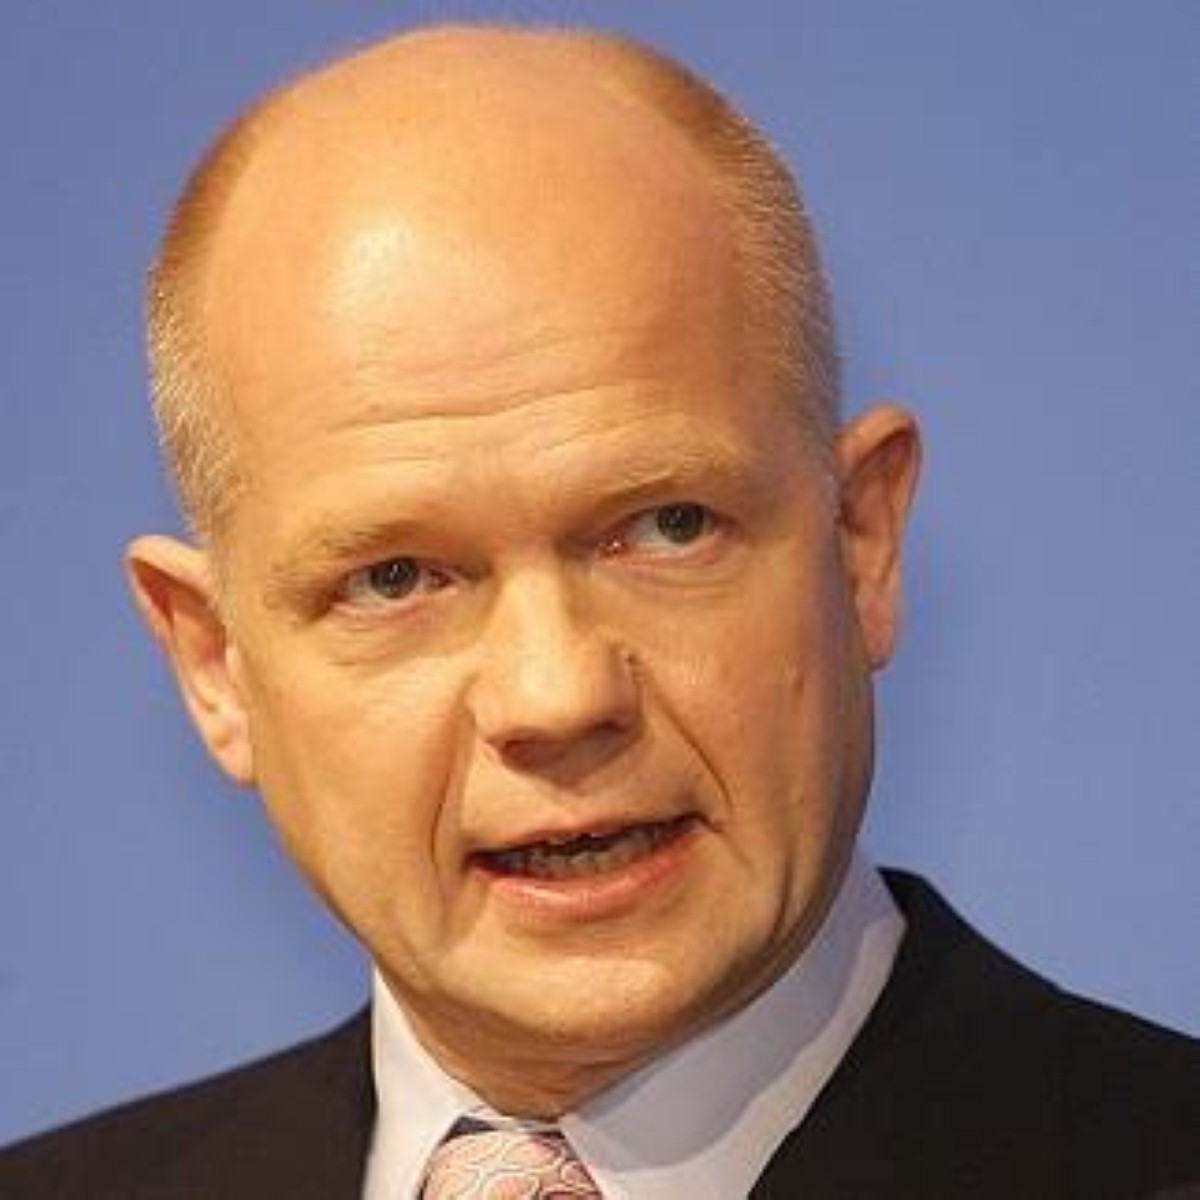 Hague: They could pose a threat to our security